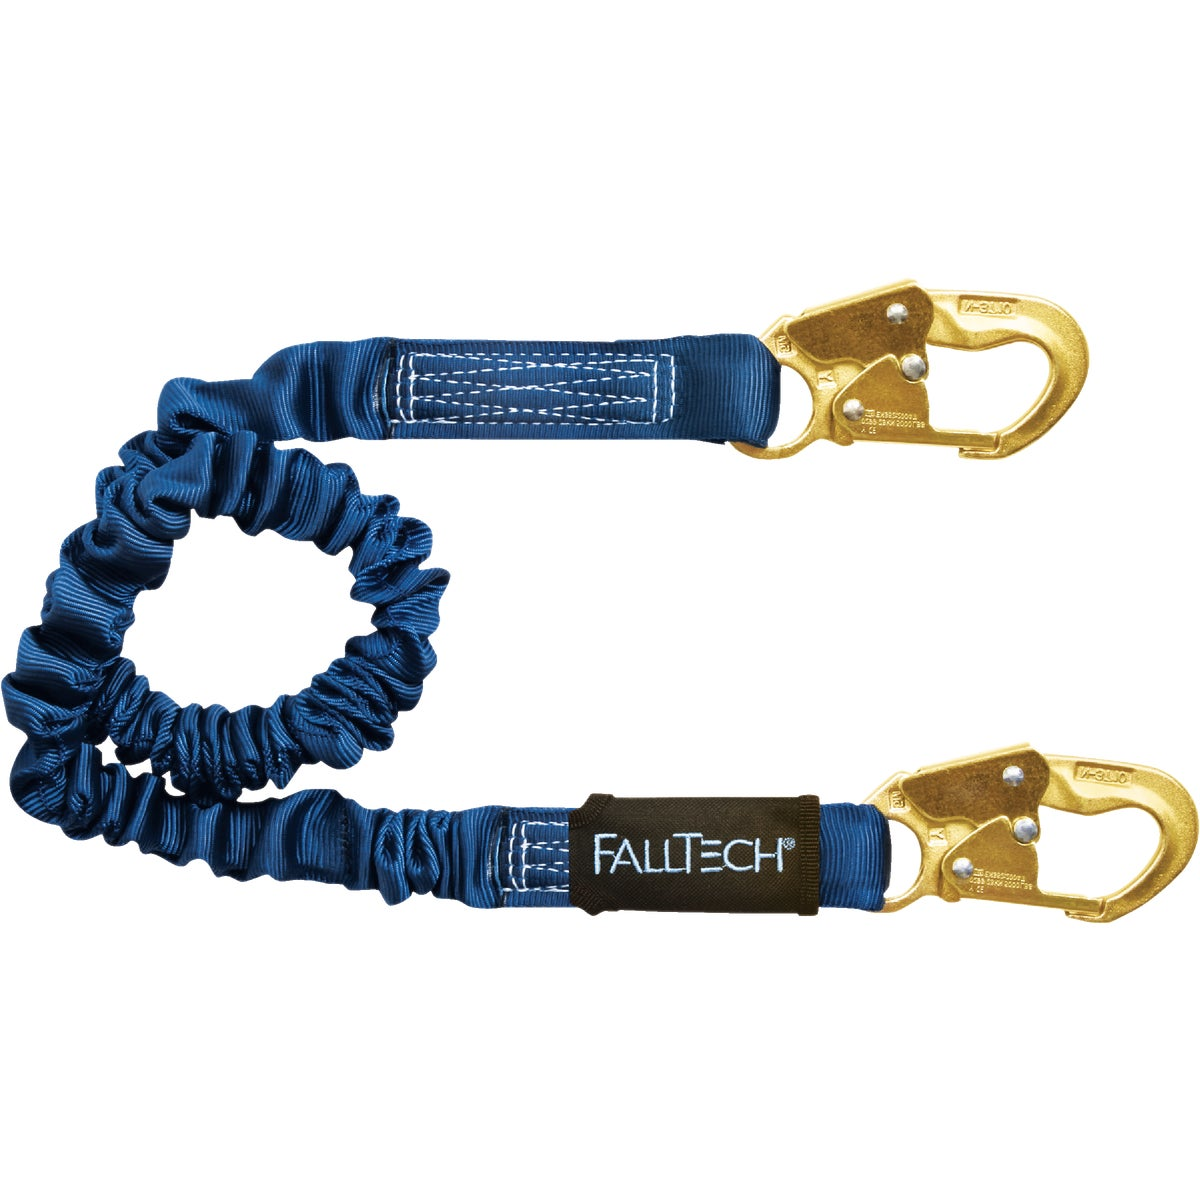 6'SHOCK ABSORB LANYARD - A8240 by Fall Tech